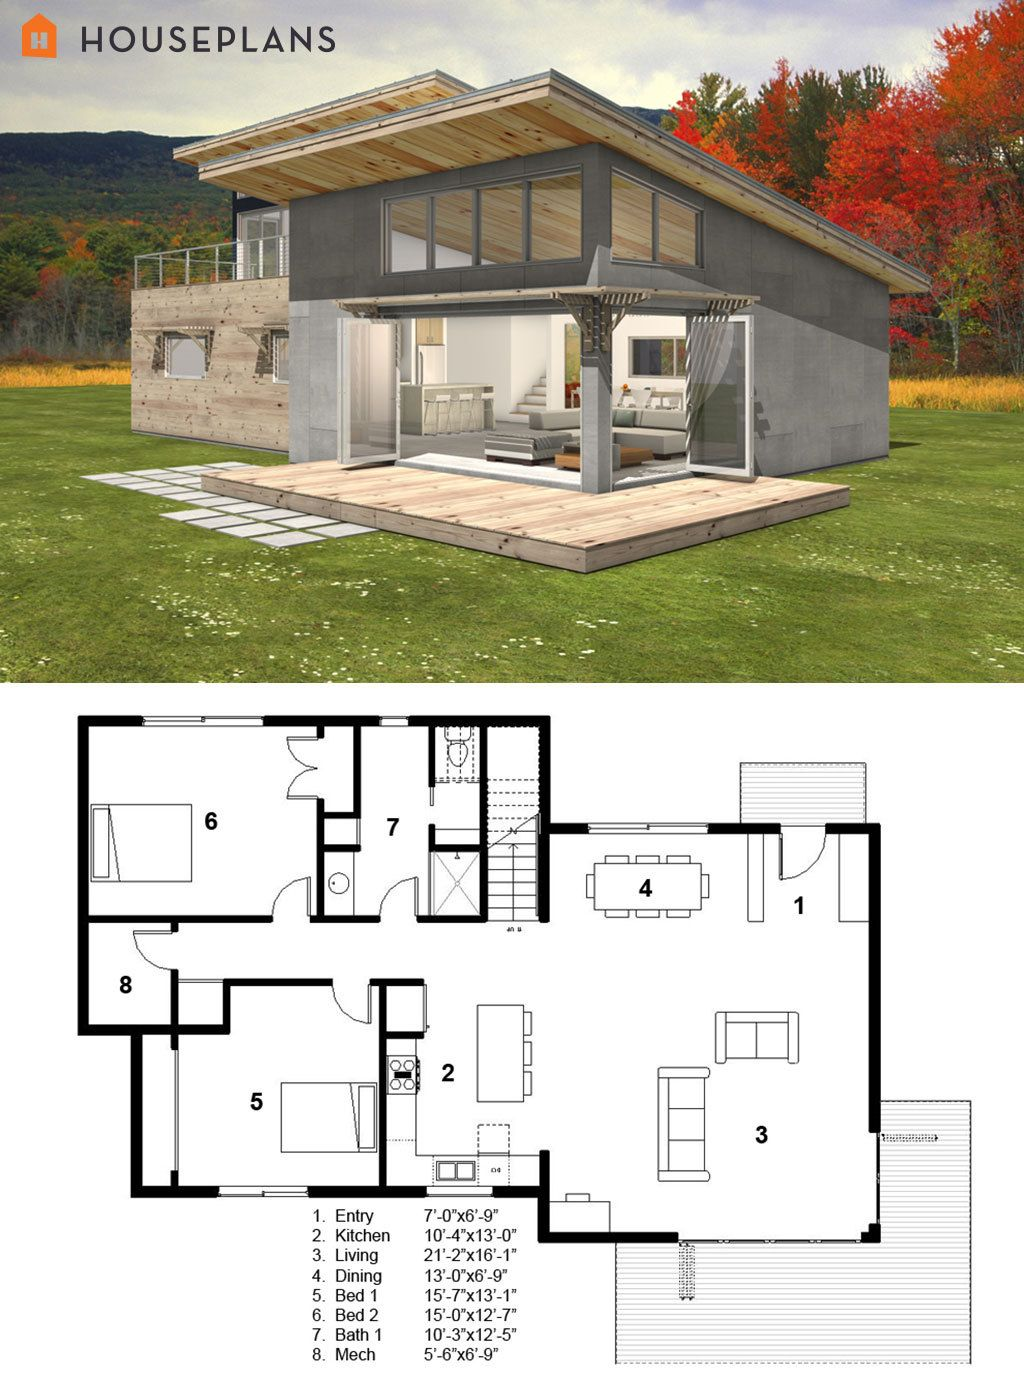 Small modern cabin house plan by freegreen energy for Modern cottage design plans